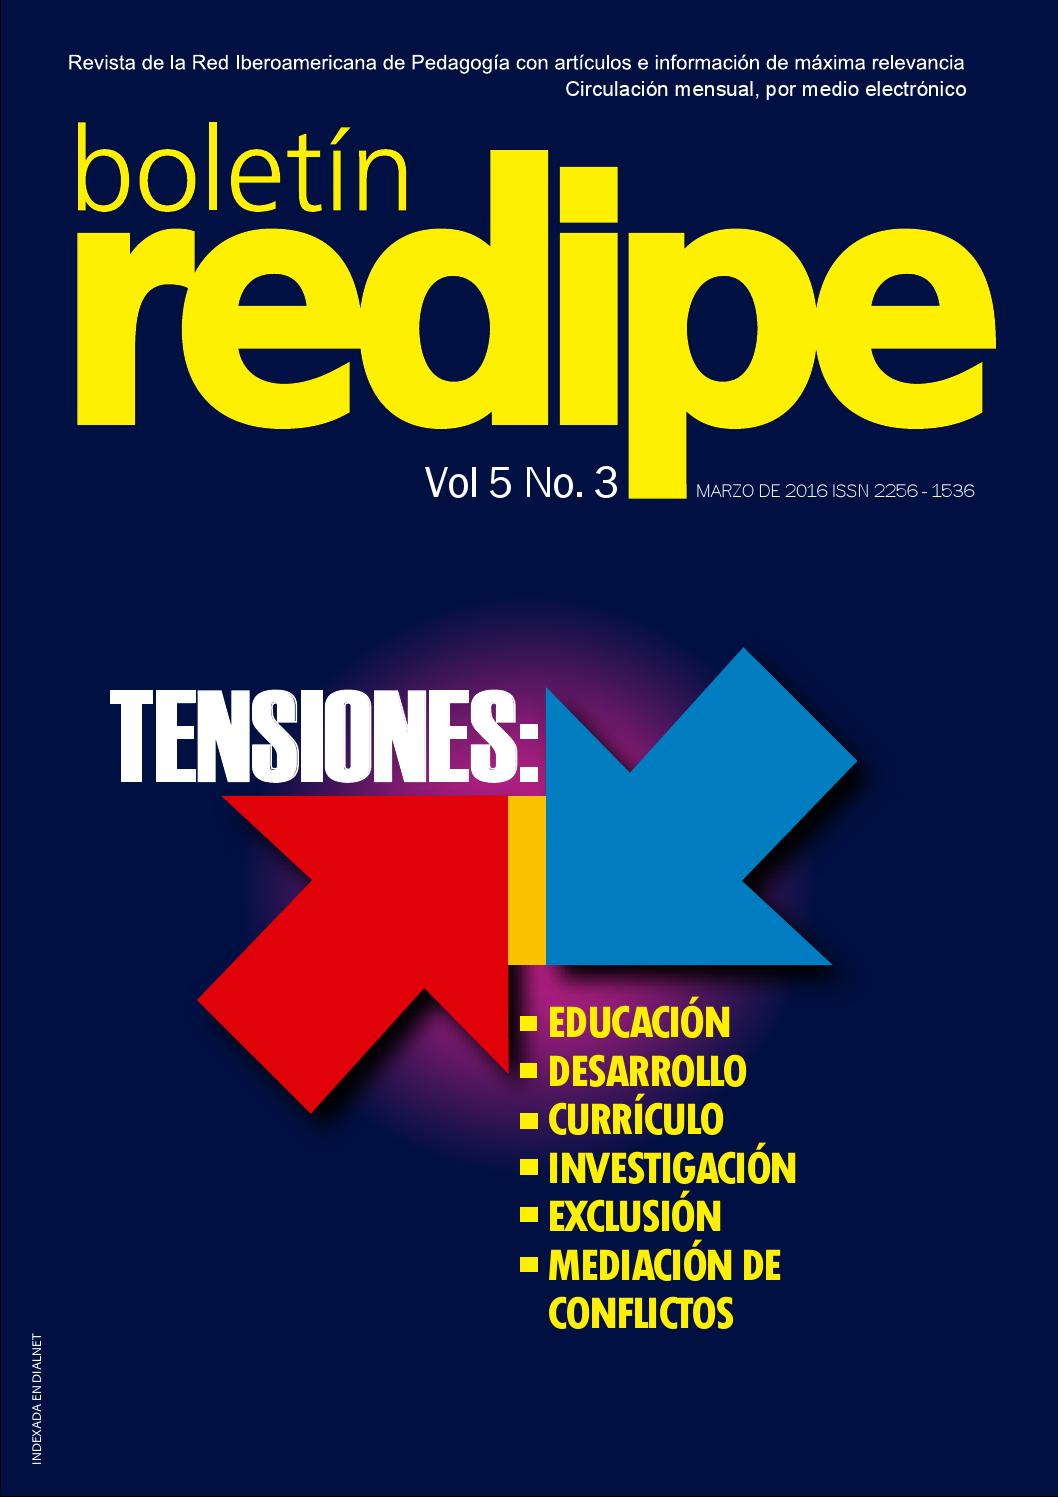 Boletin Redipe Vol5 Ed3 by REDIPE - issuu